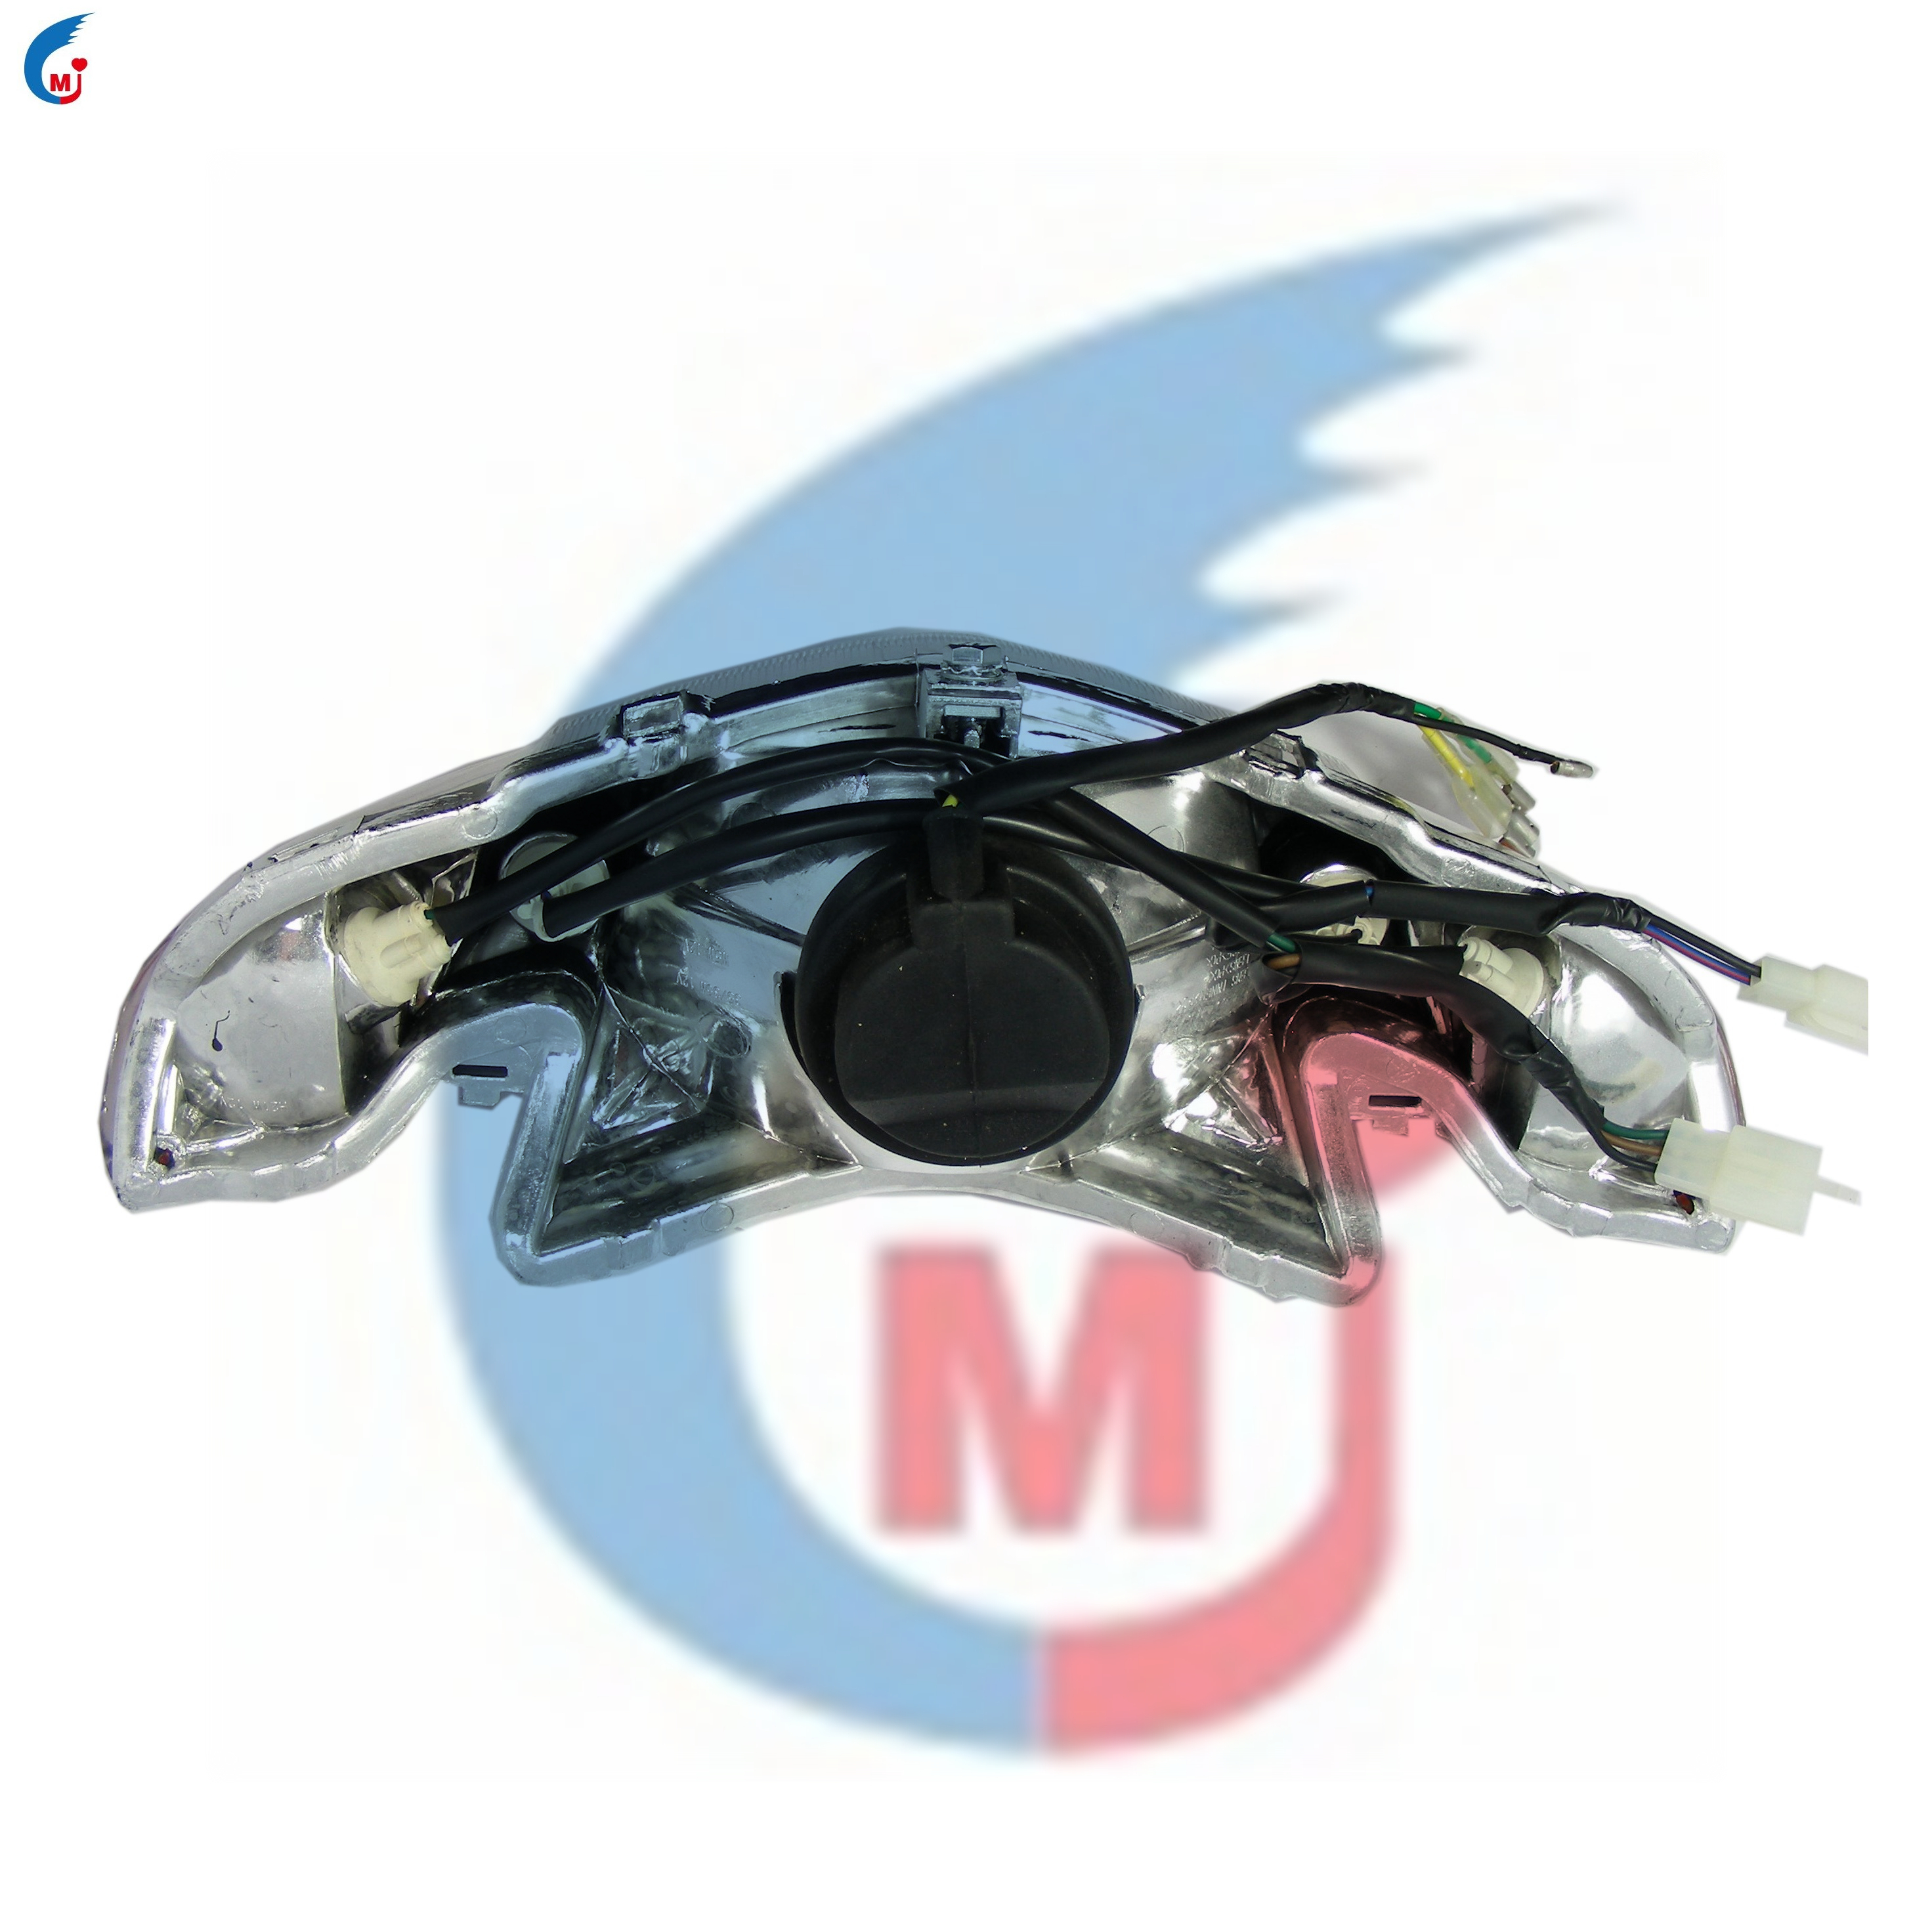 Motorcycle headlights for Yamaha Crypton T110